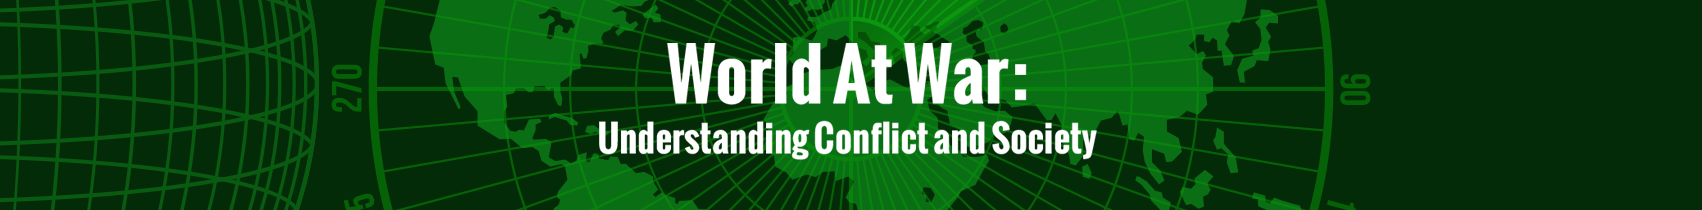 ABC-CLIO Solutions - World at War: Understanding Conflict and Society